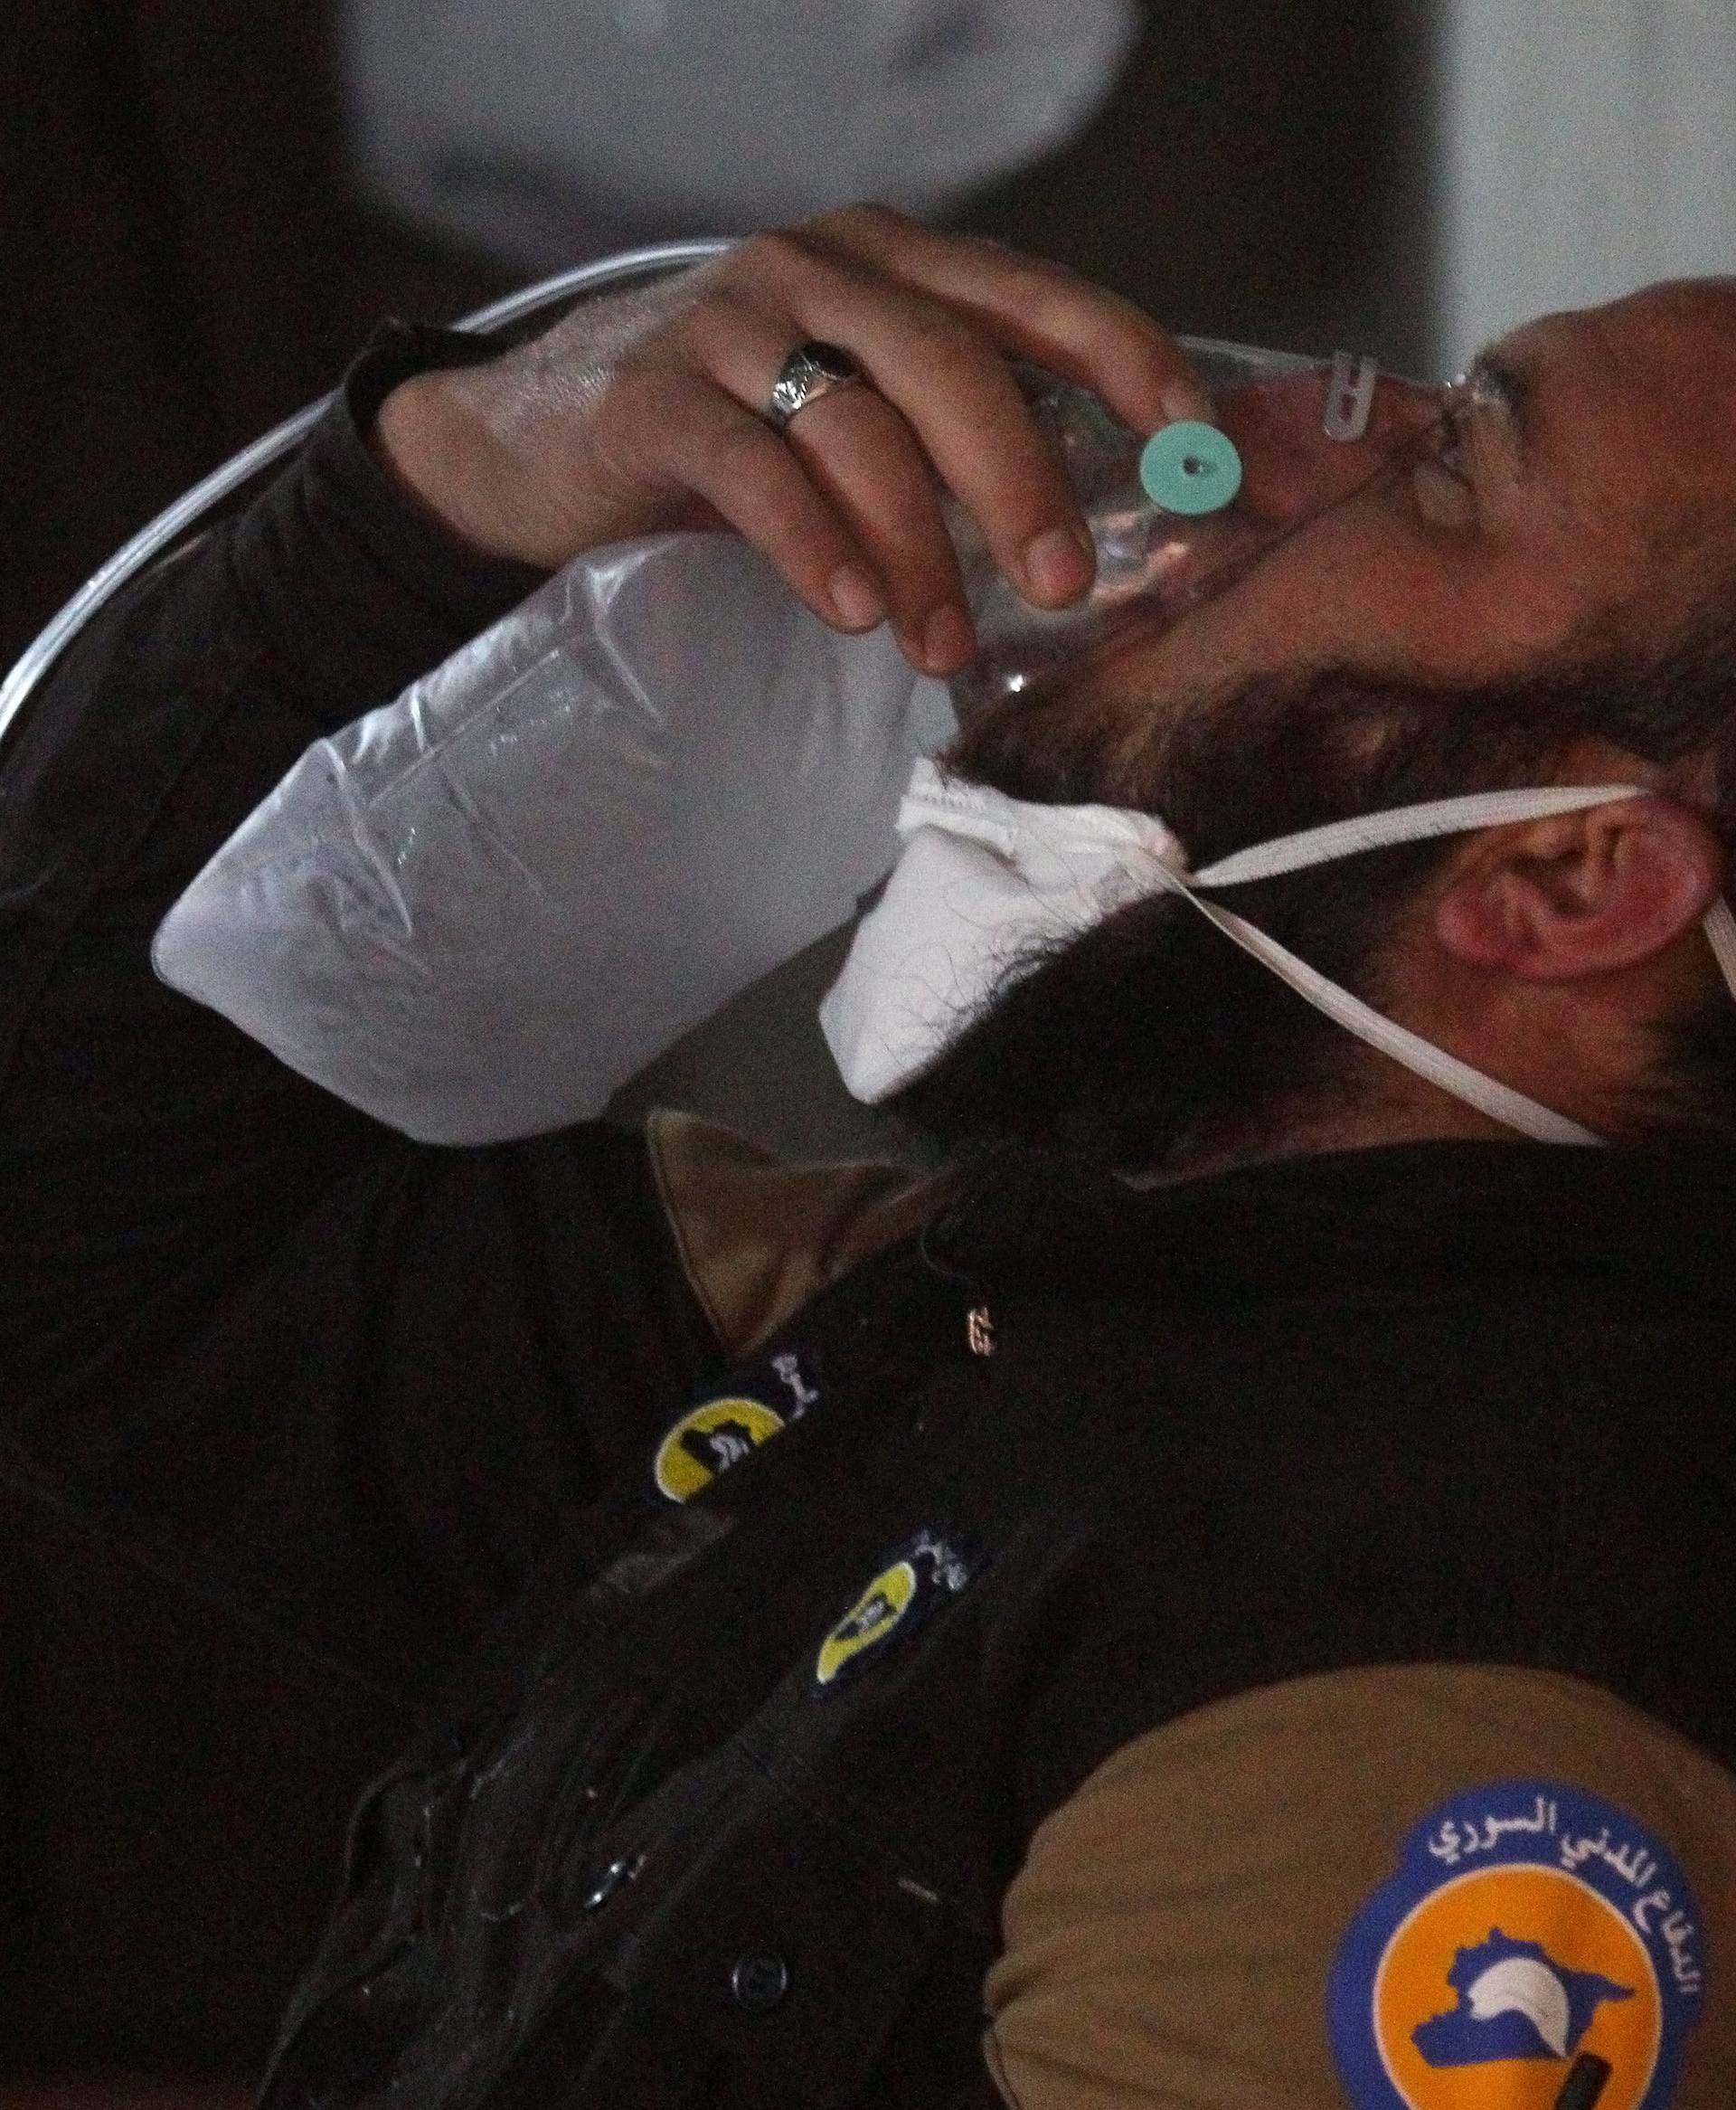 A civil defense member breathes through an oxygen mask, after what rescue workers described as a suspected gas attack in the town of Khan Sheikhoun in rebel-held Idlib